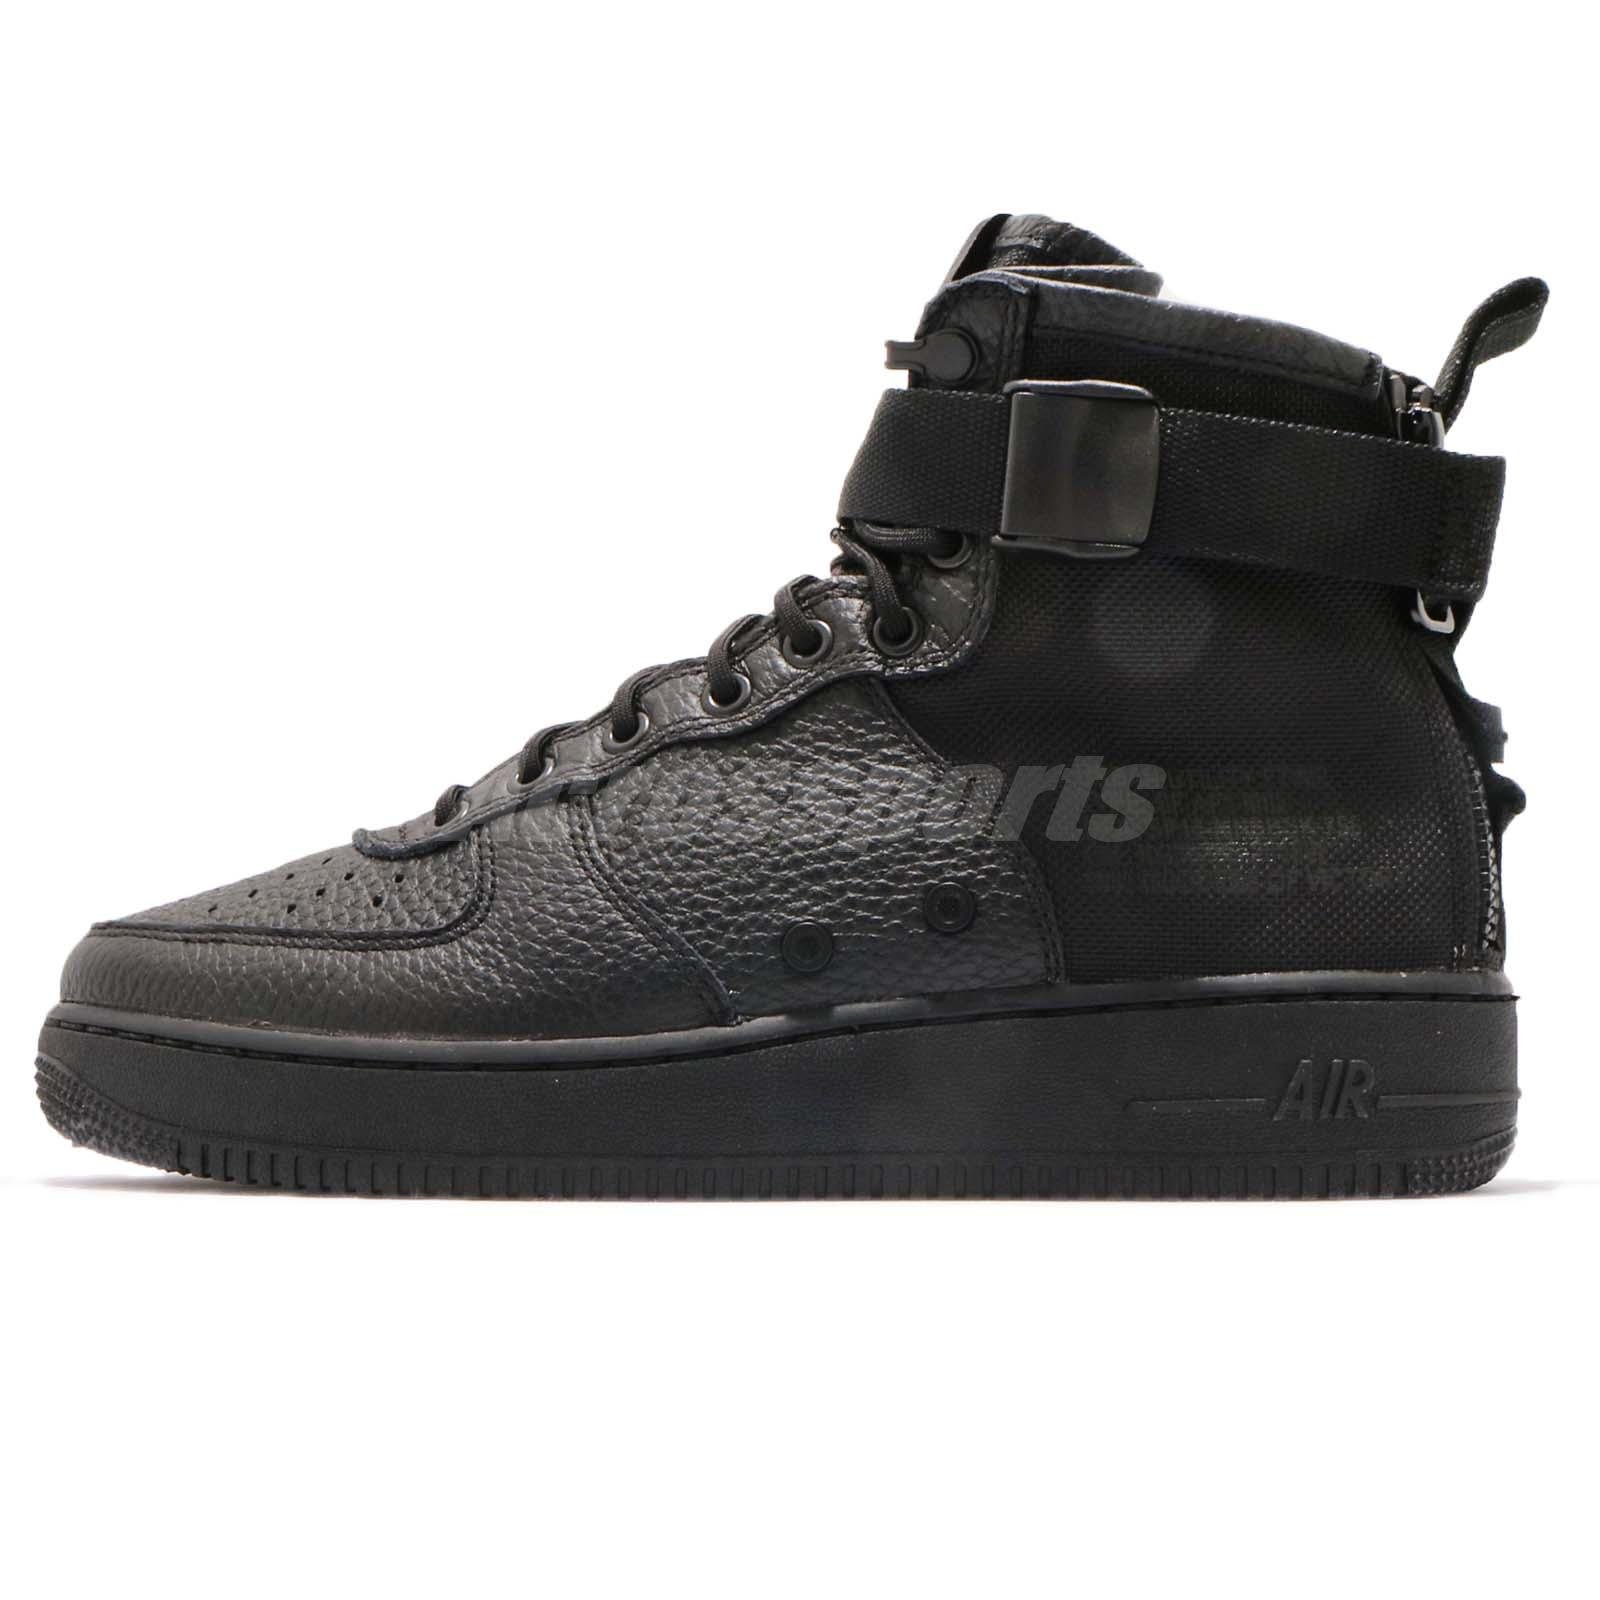 sports shoes 4f51b f4587 Nike SF AF1 Mid Triple Black Men Lifestyle Casual Shoes Sneakers 917753-005